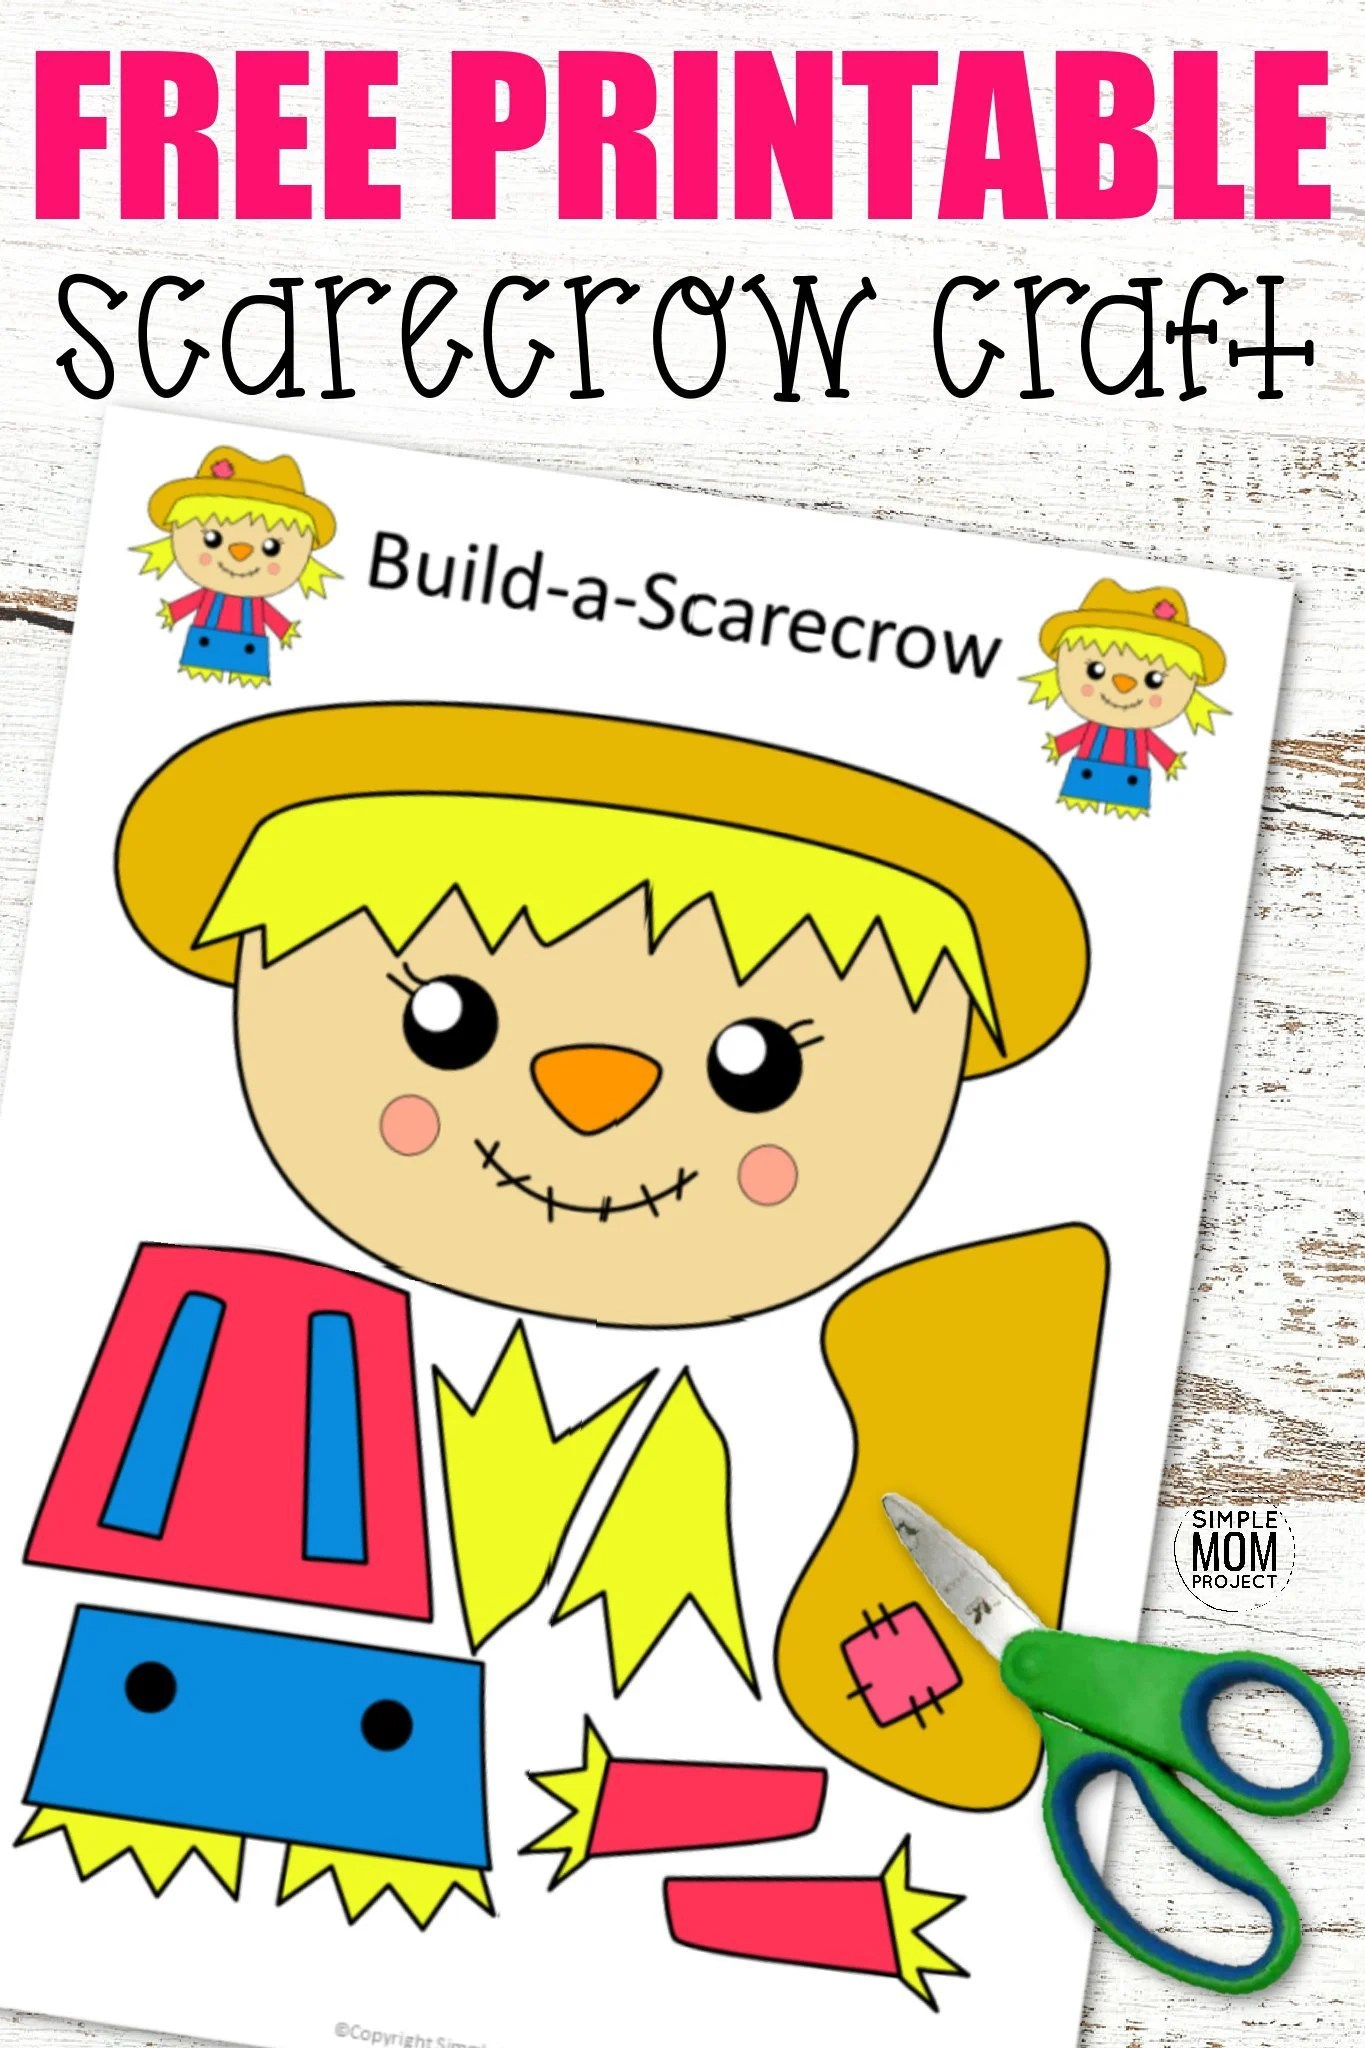 Free Printable Cut And Paste Girl Scarecrow Craft For Kids